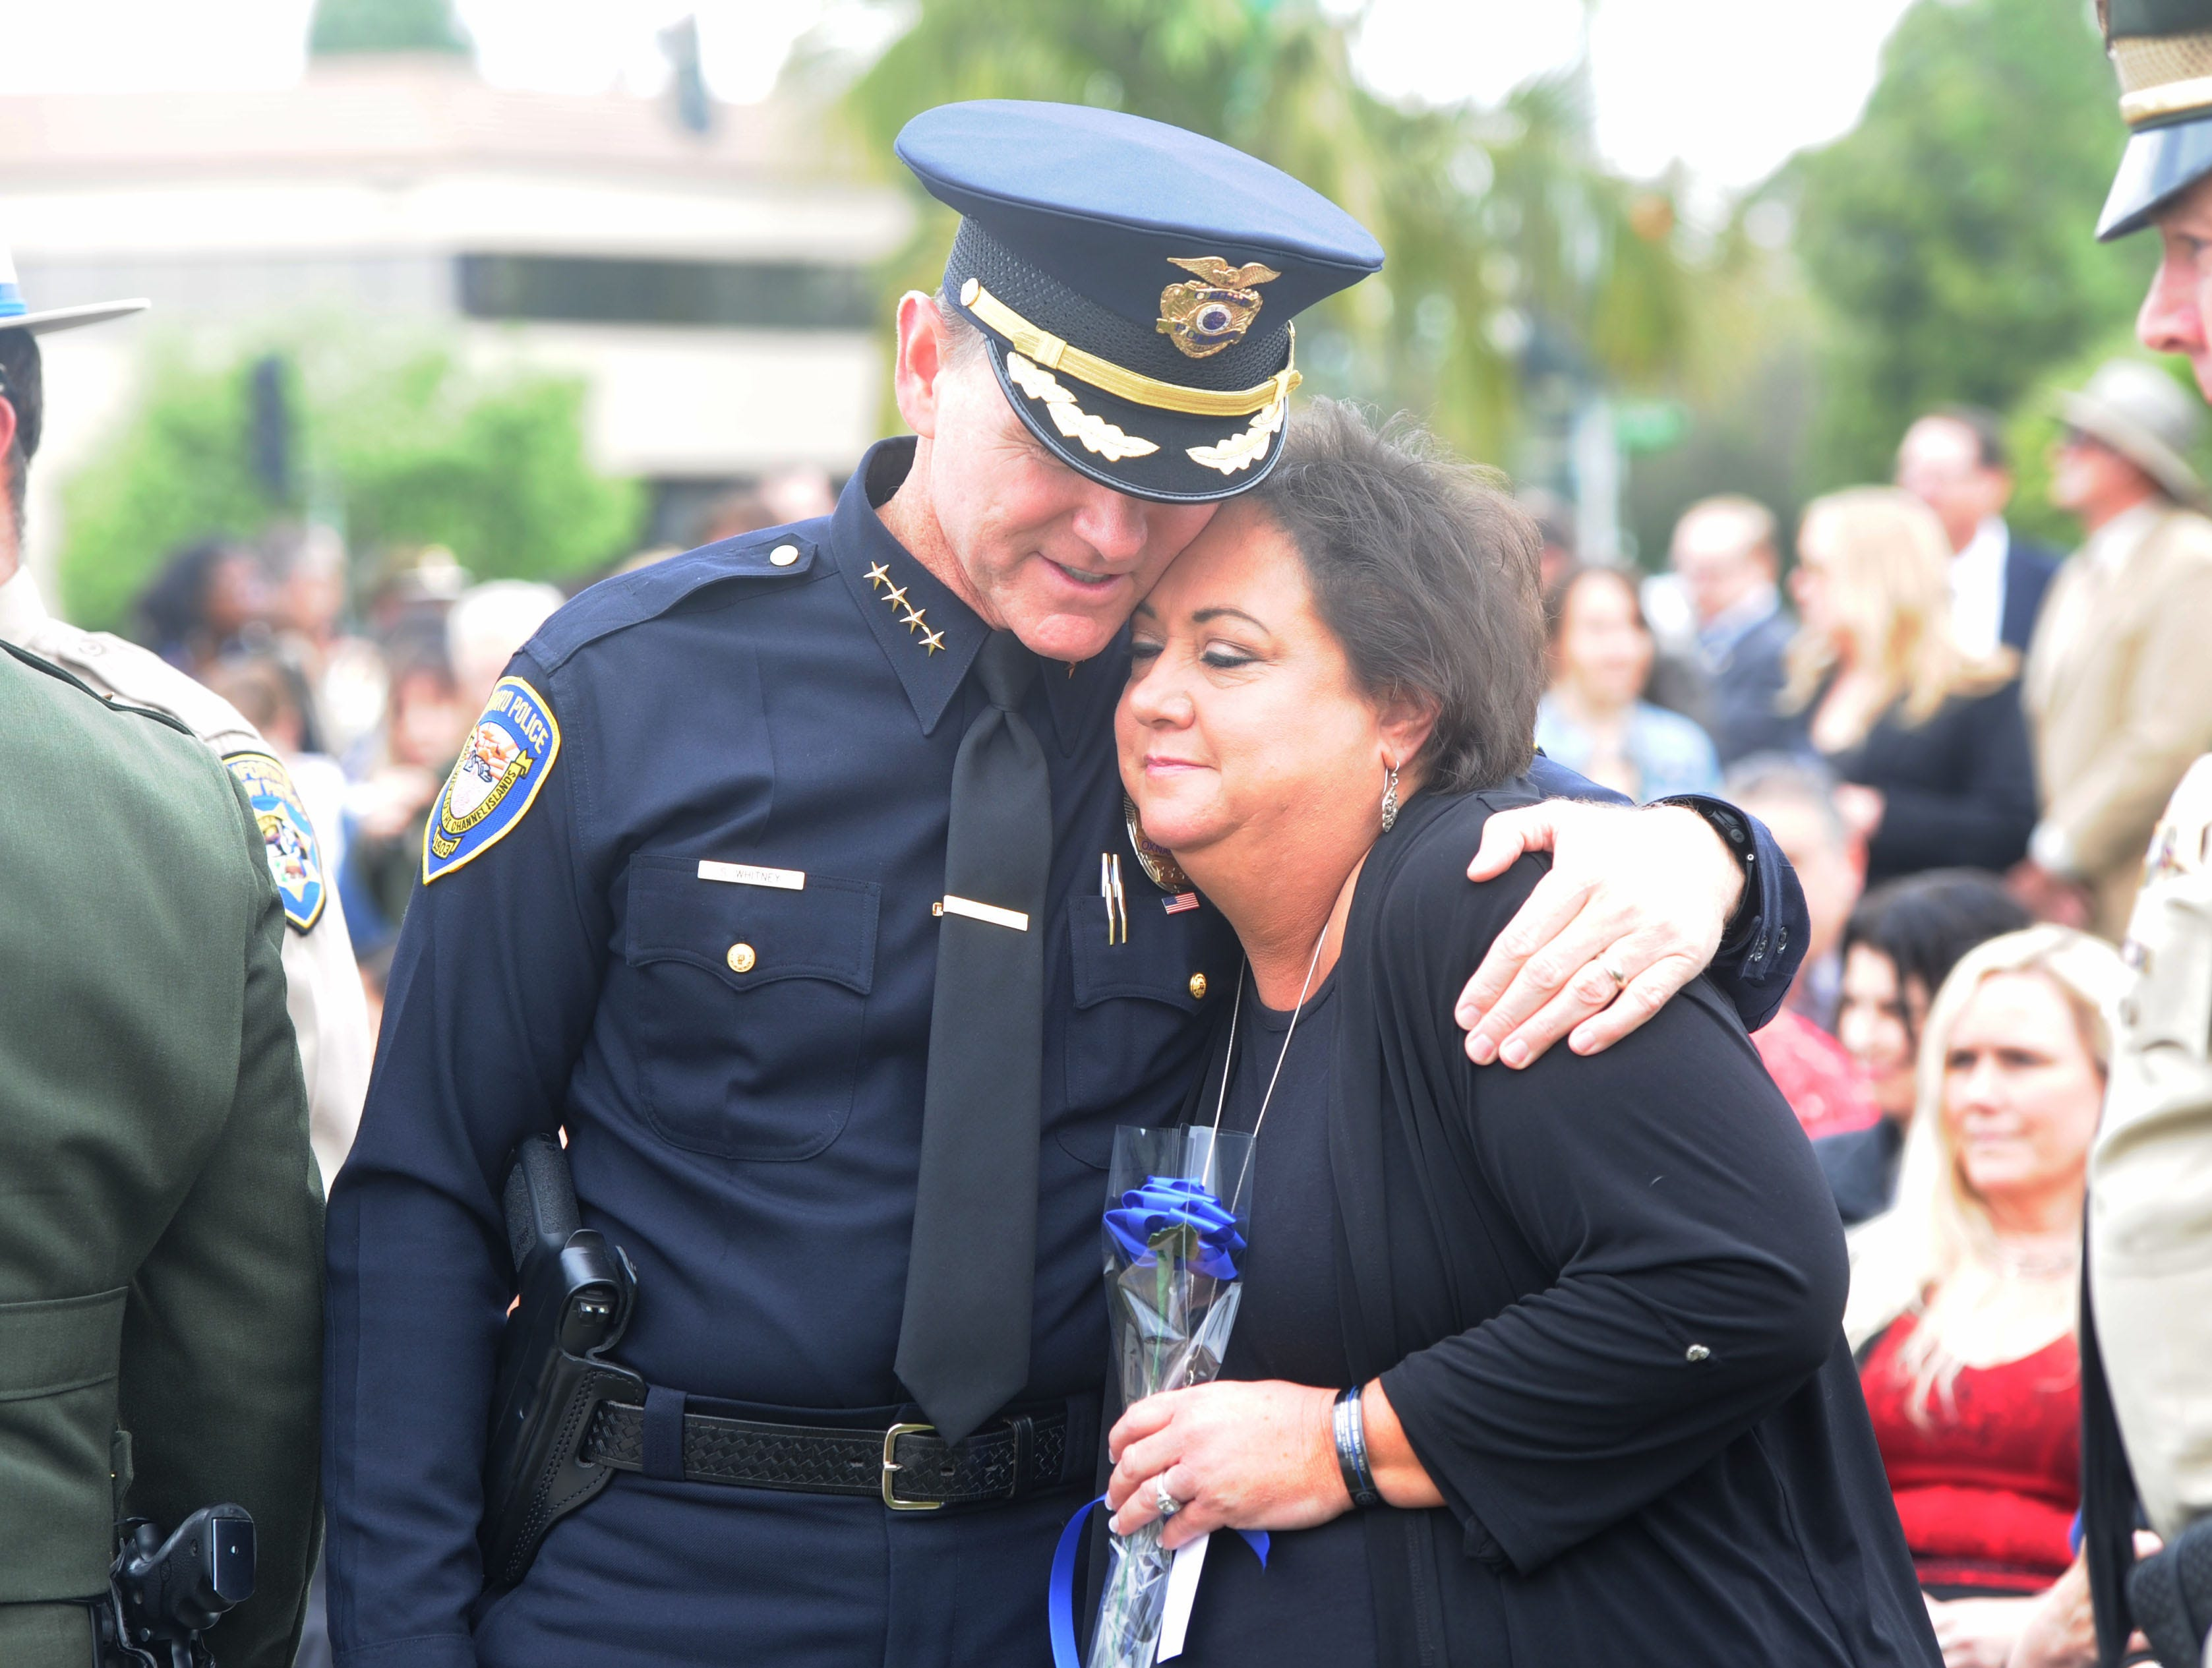 Oxnard Police Chief Scott Whitney hugs Karen Helus on Thursday at the Ventura County Peace Officers Memorial. The late sheriff's Sgt. Ron Helus was among those honored.